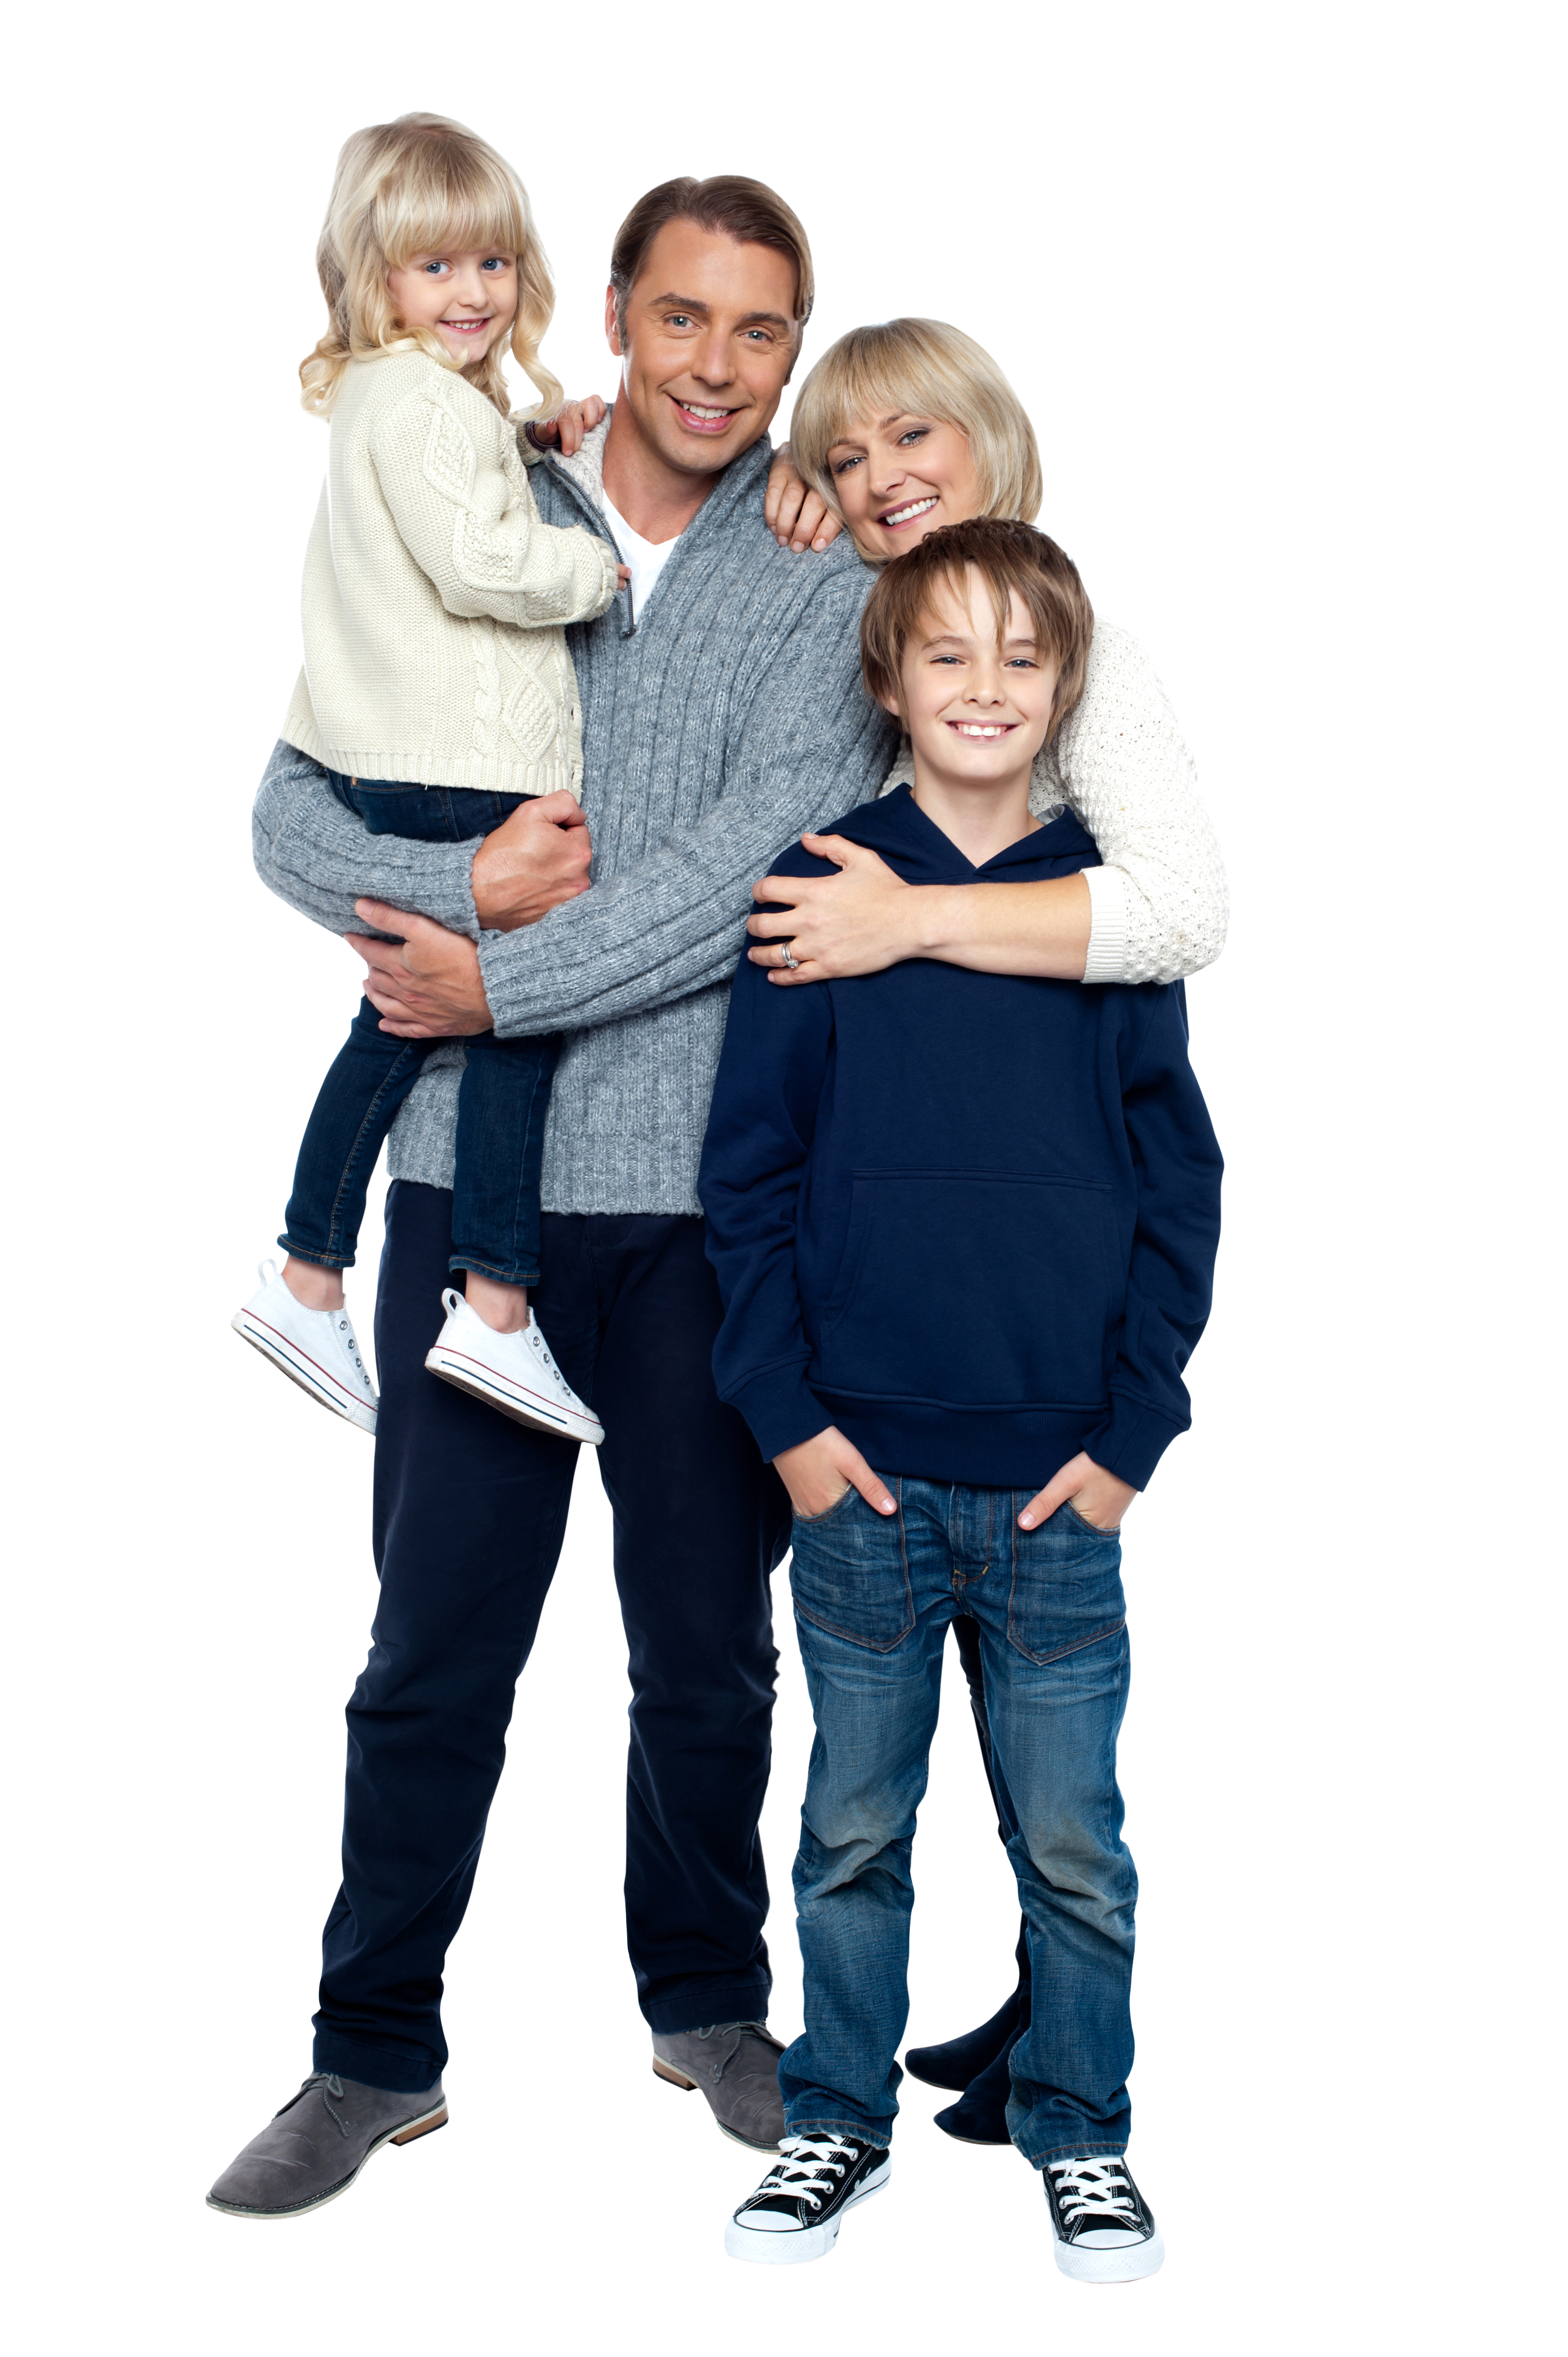 Family png image. Purepng free transparent cc